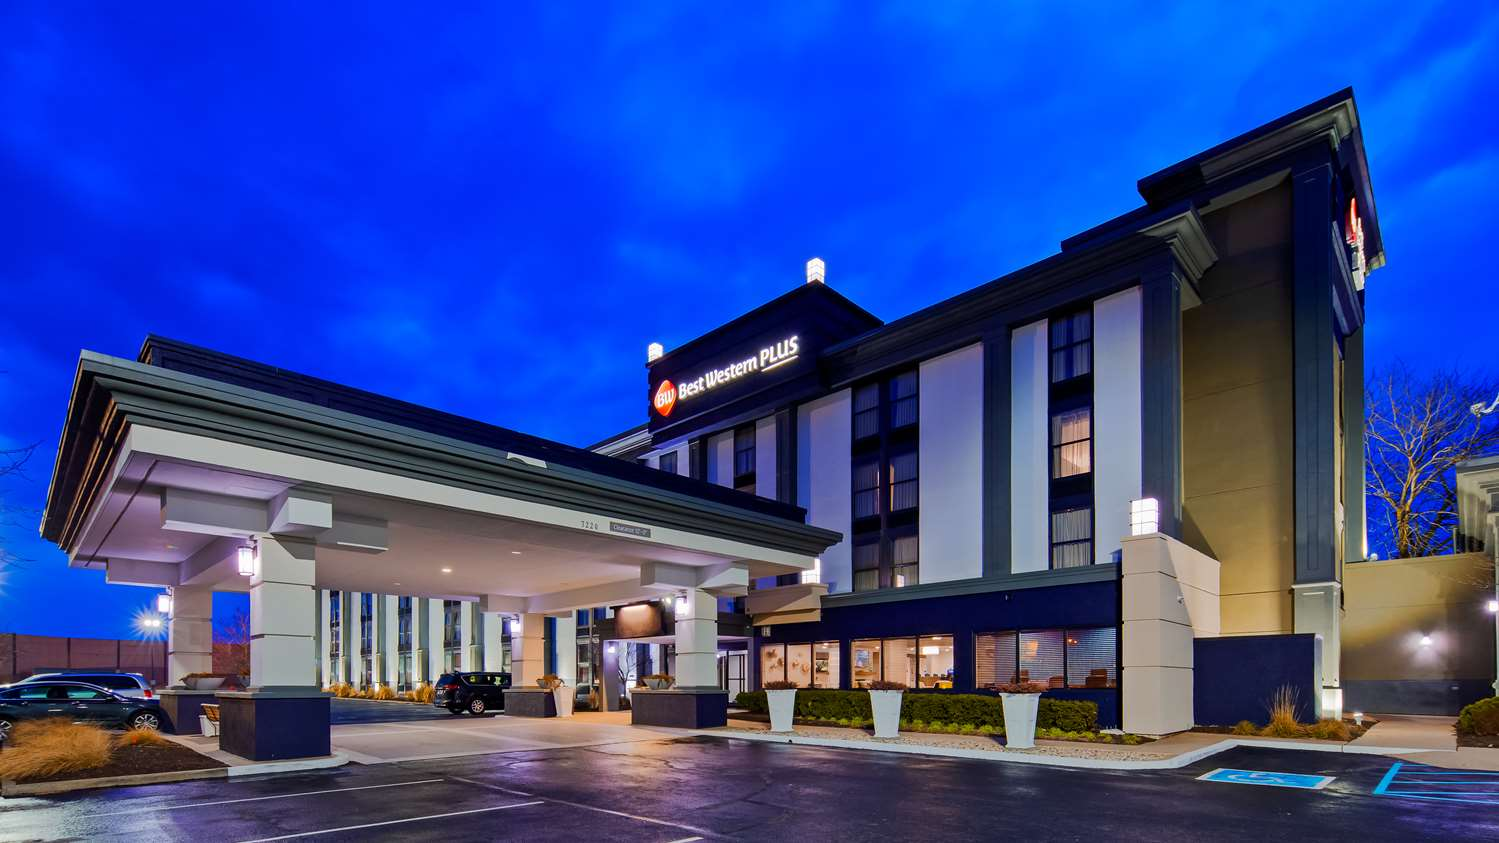 Holiday Inn Express Hotel NW Park Indianapolis